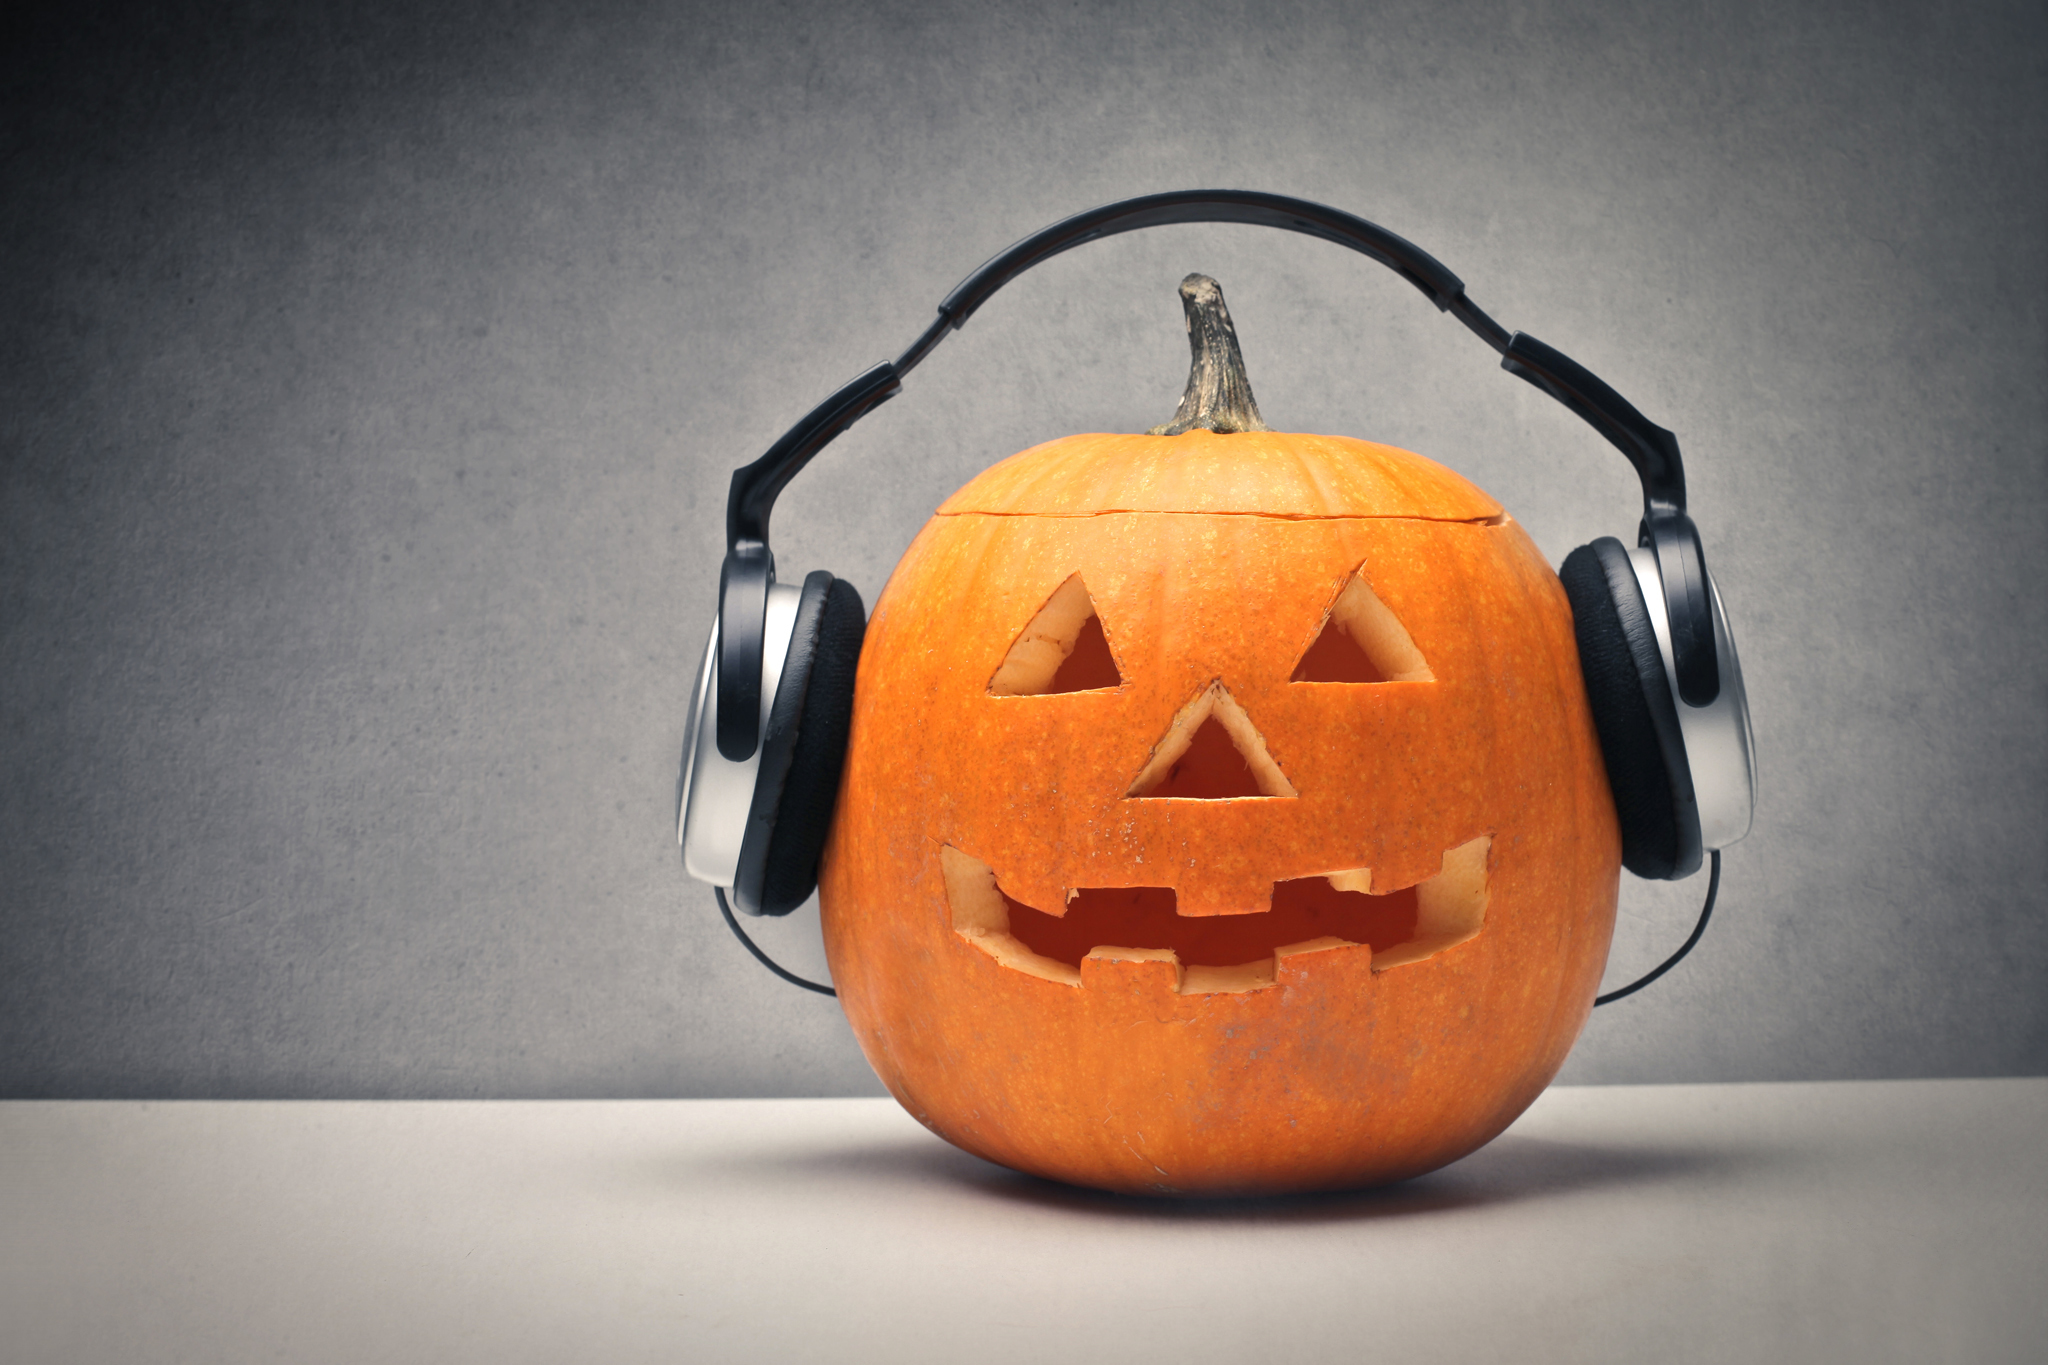 The 20 best Halloween songs